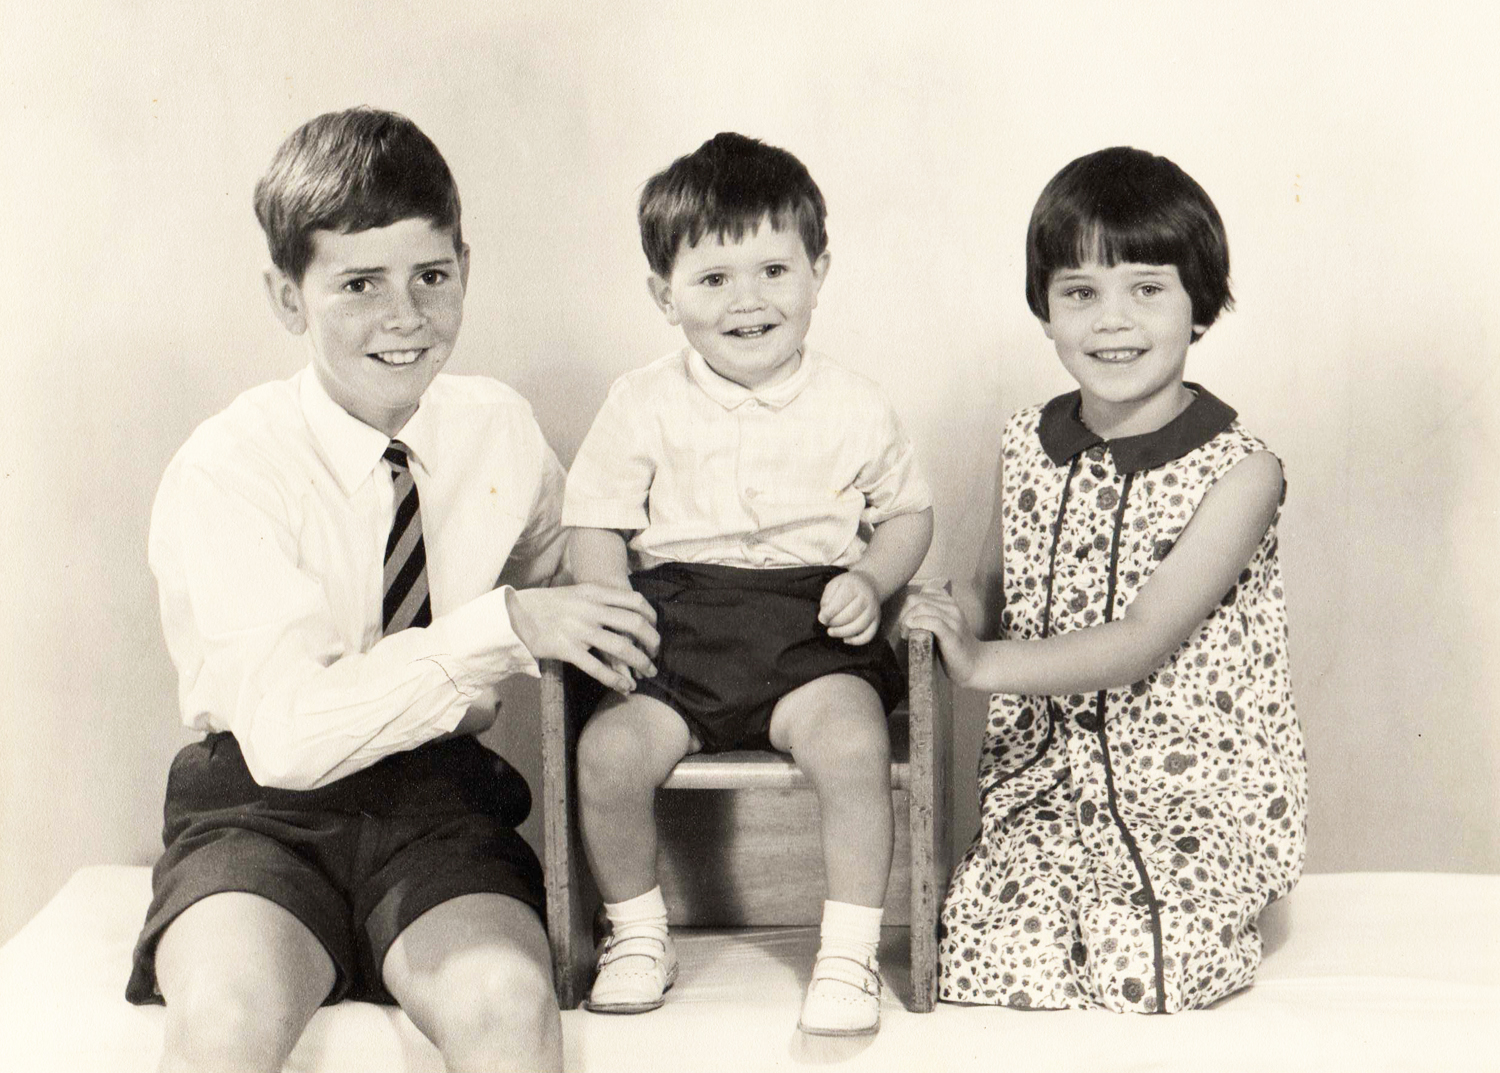 Is This Mutton blogger Gail Hanlon with brothers Andrew and Robert as children